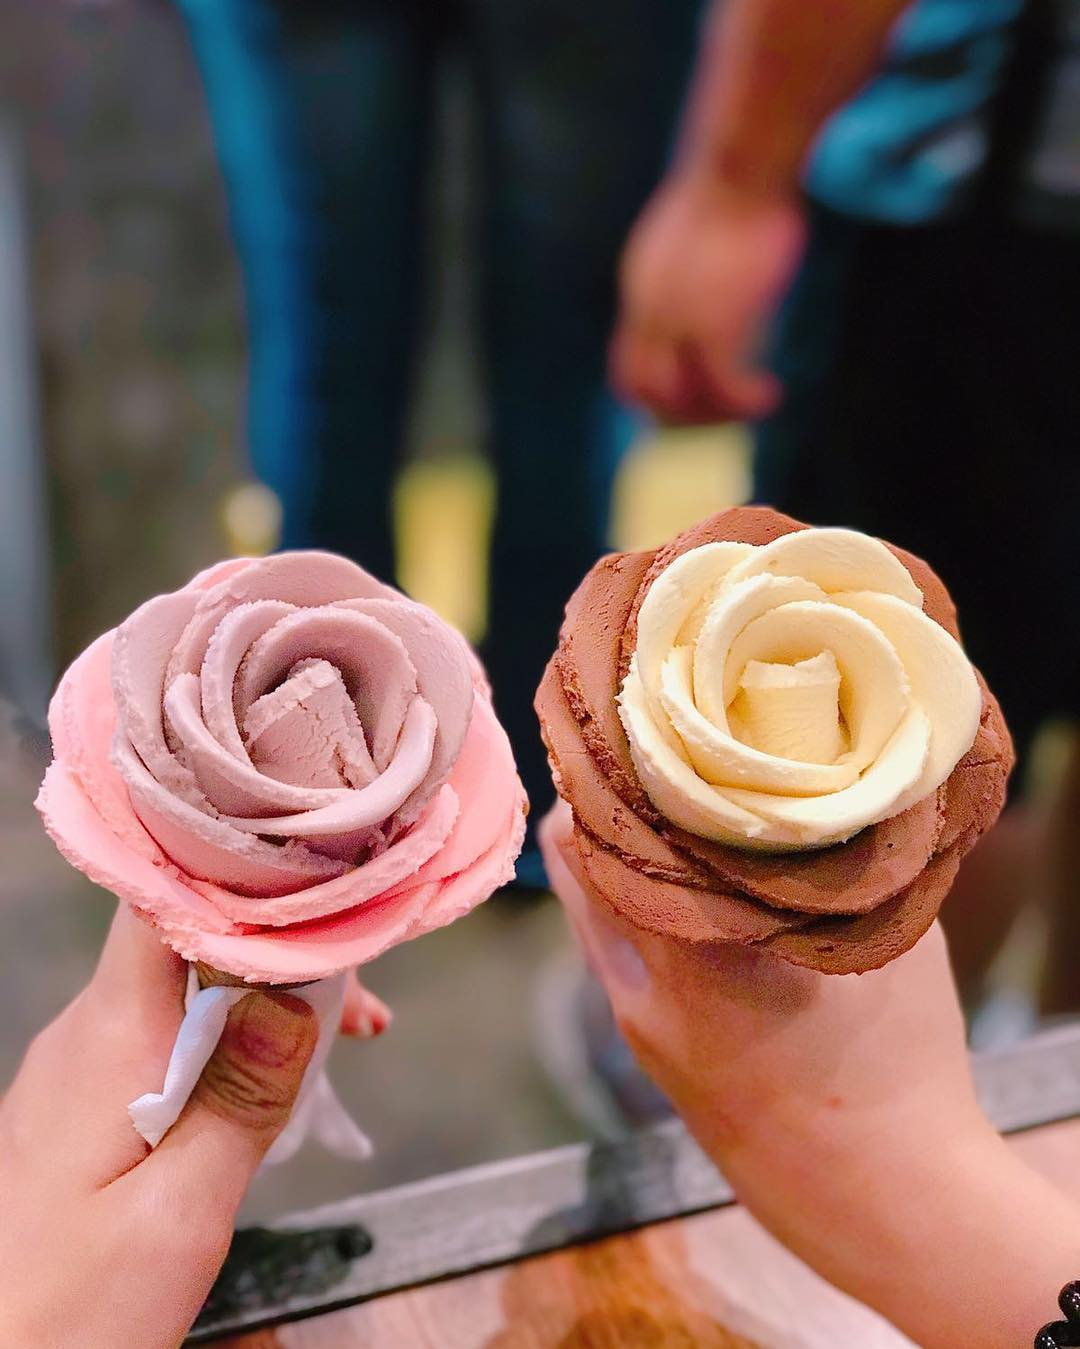 i-creamy flower gelato rose petals ice cream